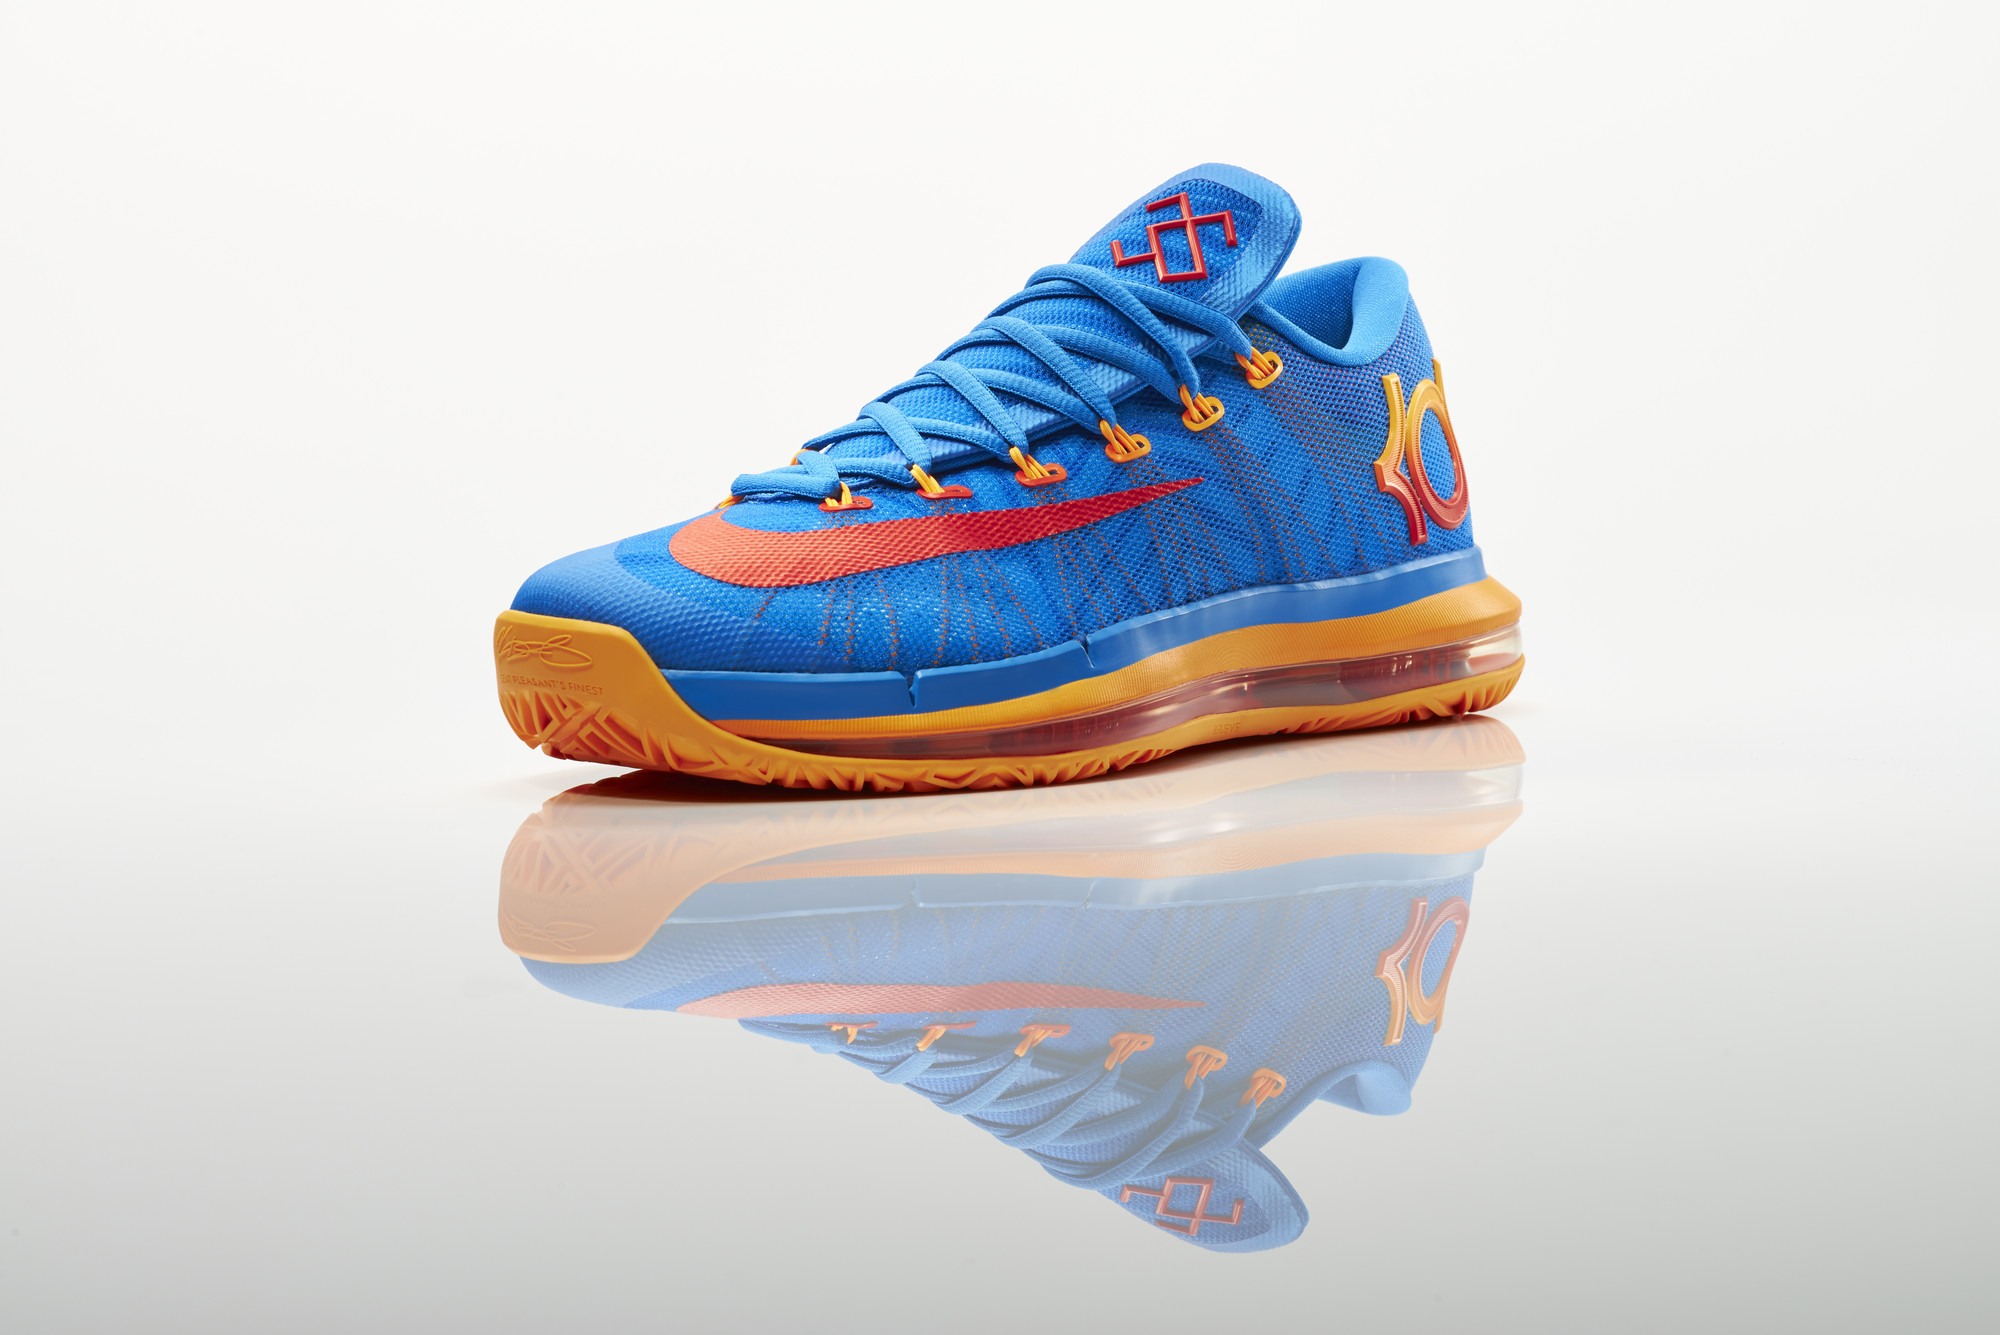 finest selection 123c9 5d24b nike pg 13 womens orange 54.99. kd 6 weight · kd 6 weight 56.99. blue and  ...